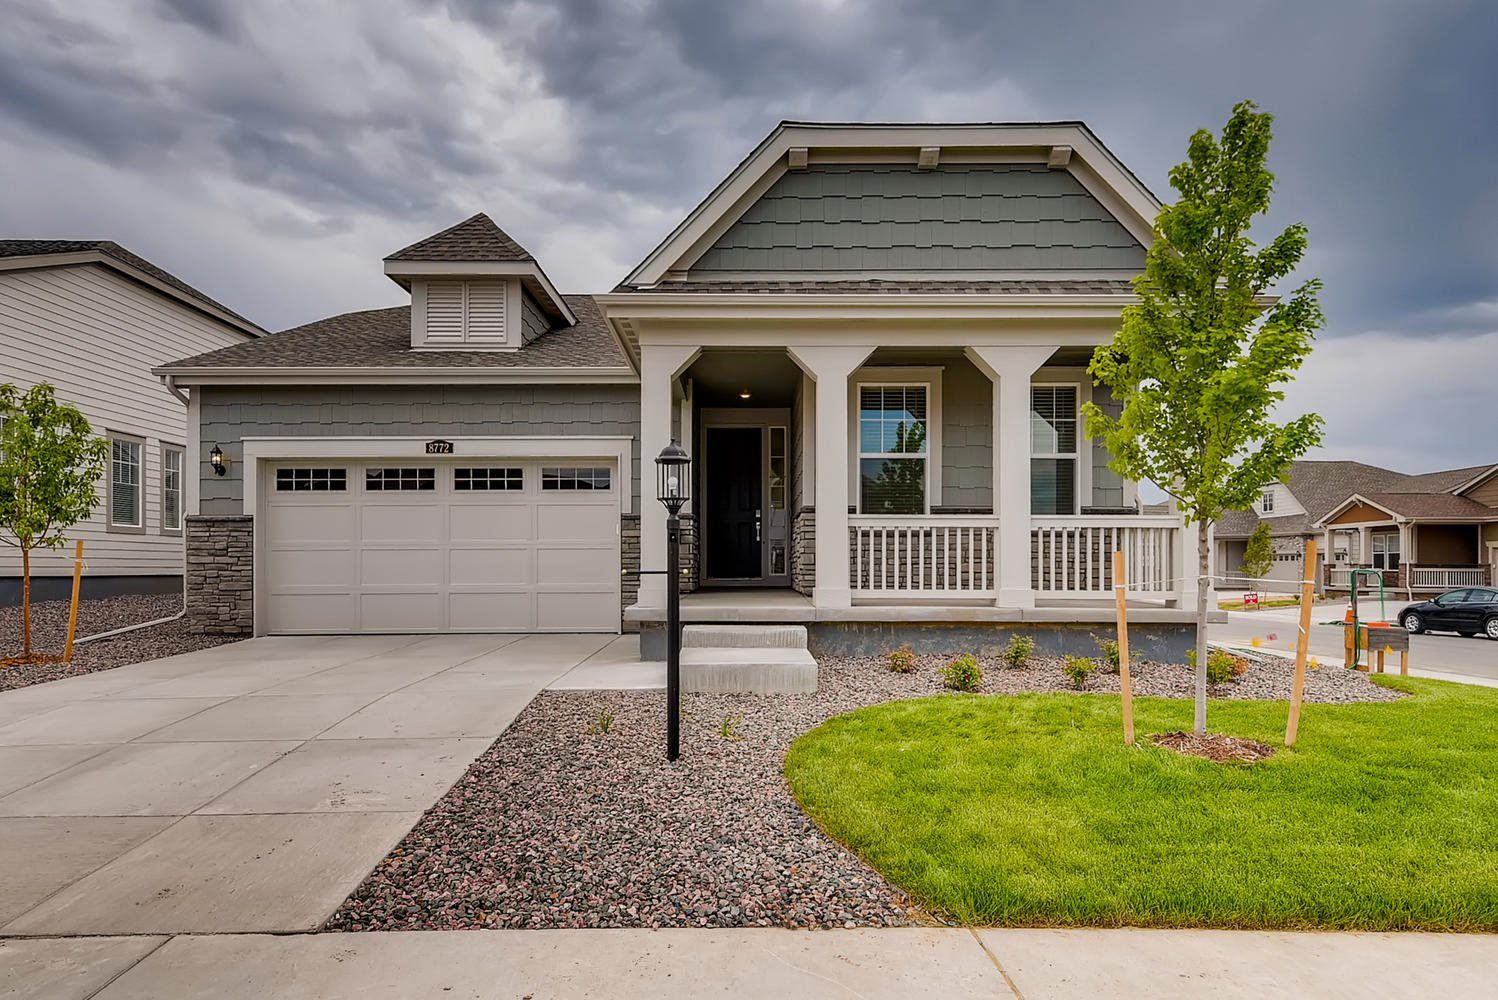 New Homes for Sale in Thornton CO